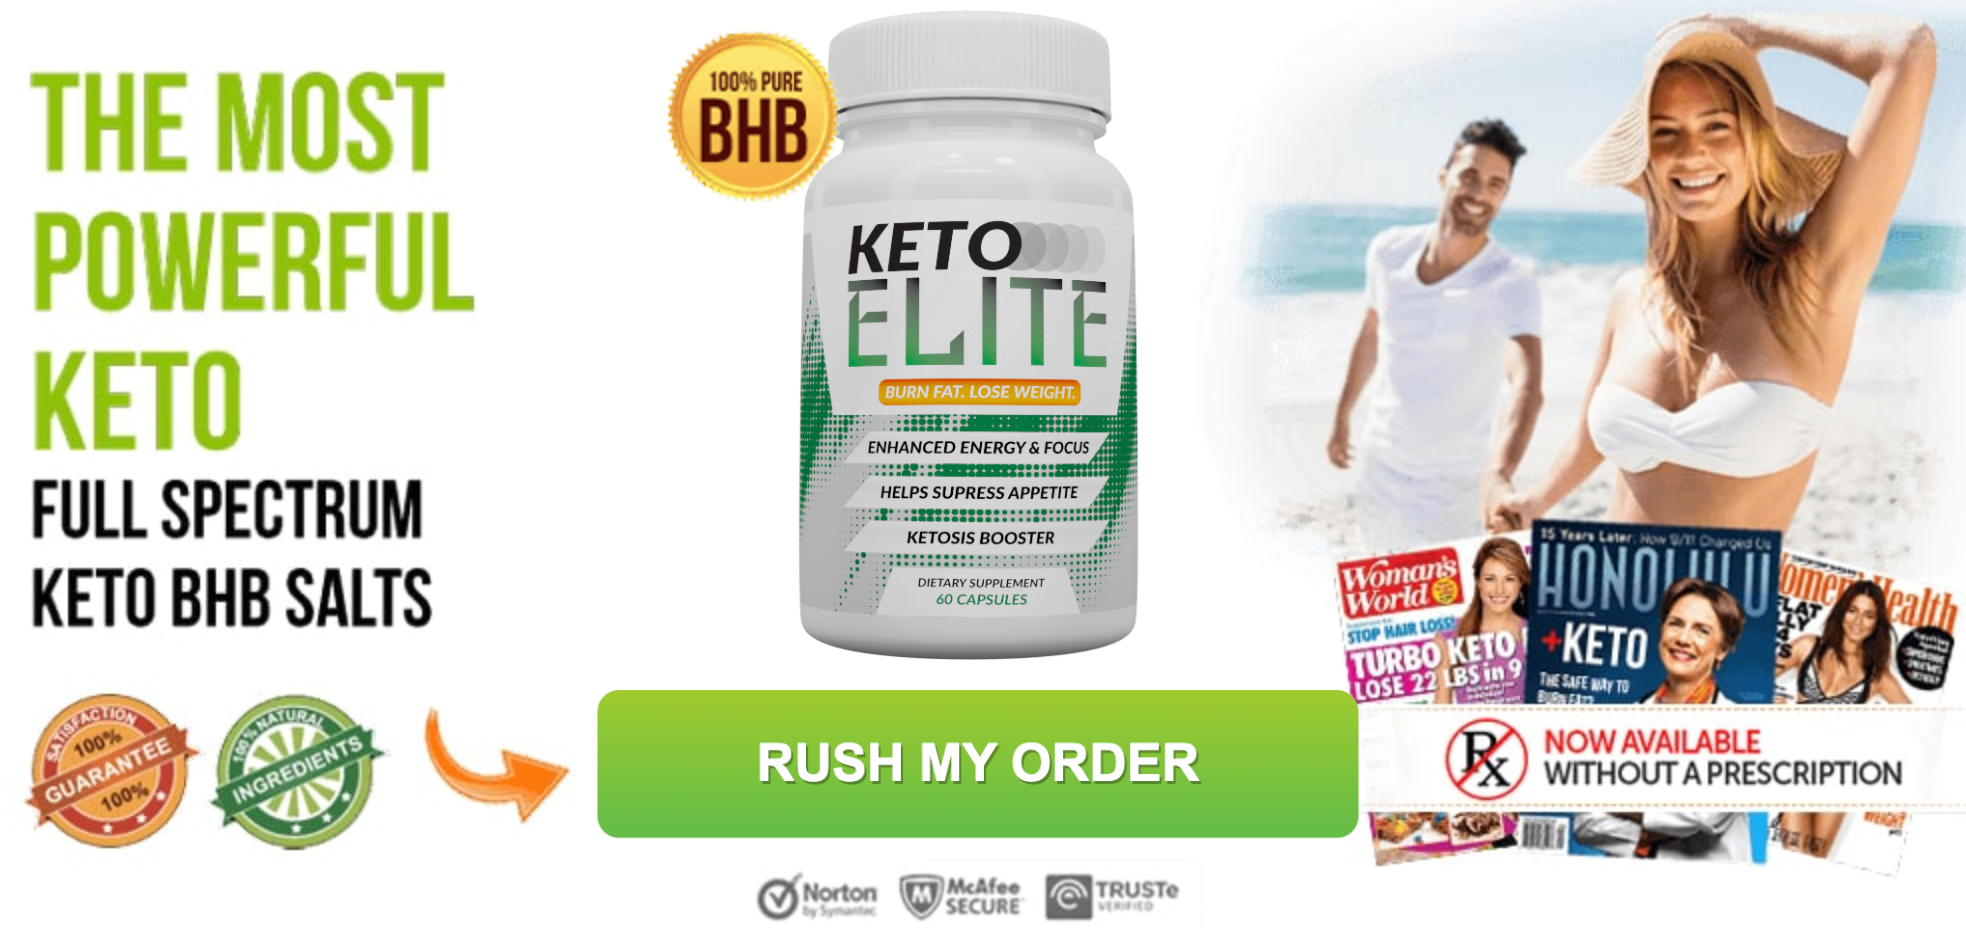 Keto Elite-review